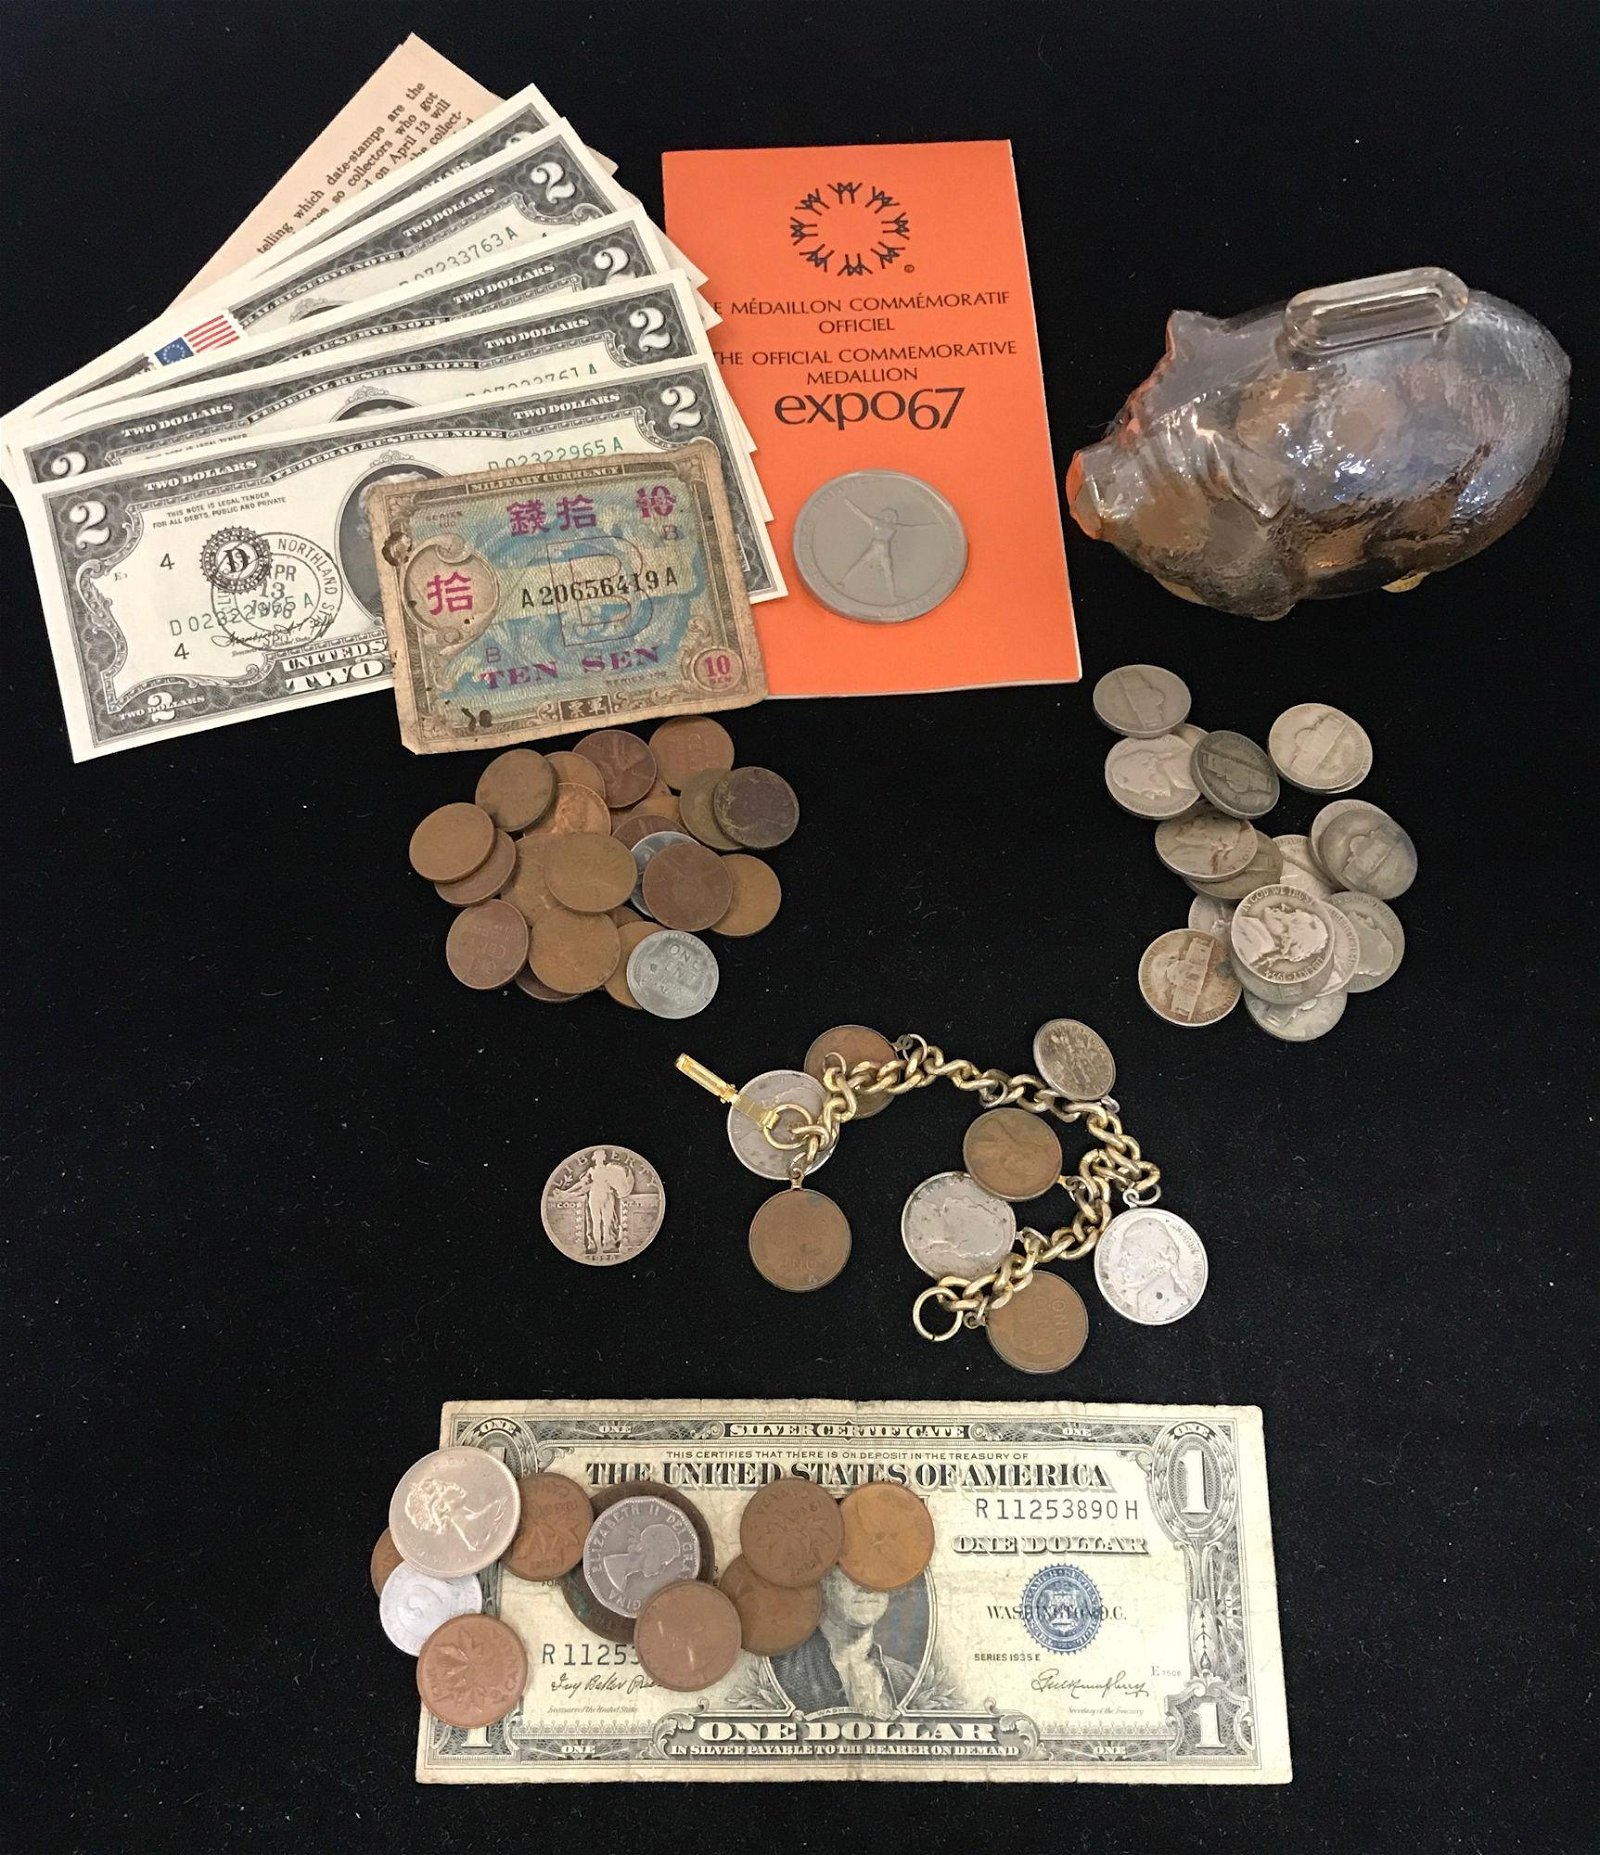 MIXED LOT INCLUDING GLASS PIGGY BANK WITH COINS, COIN